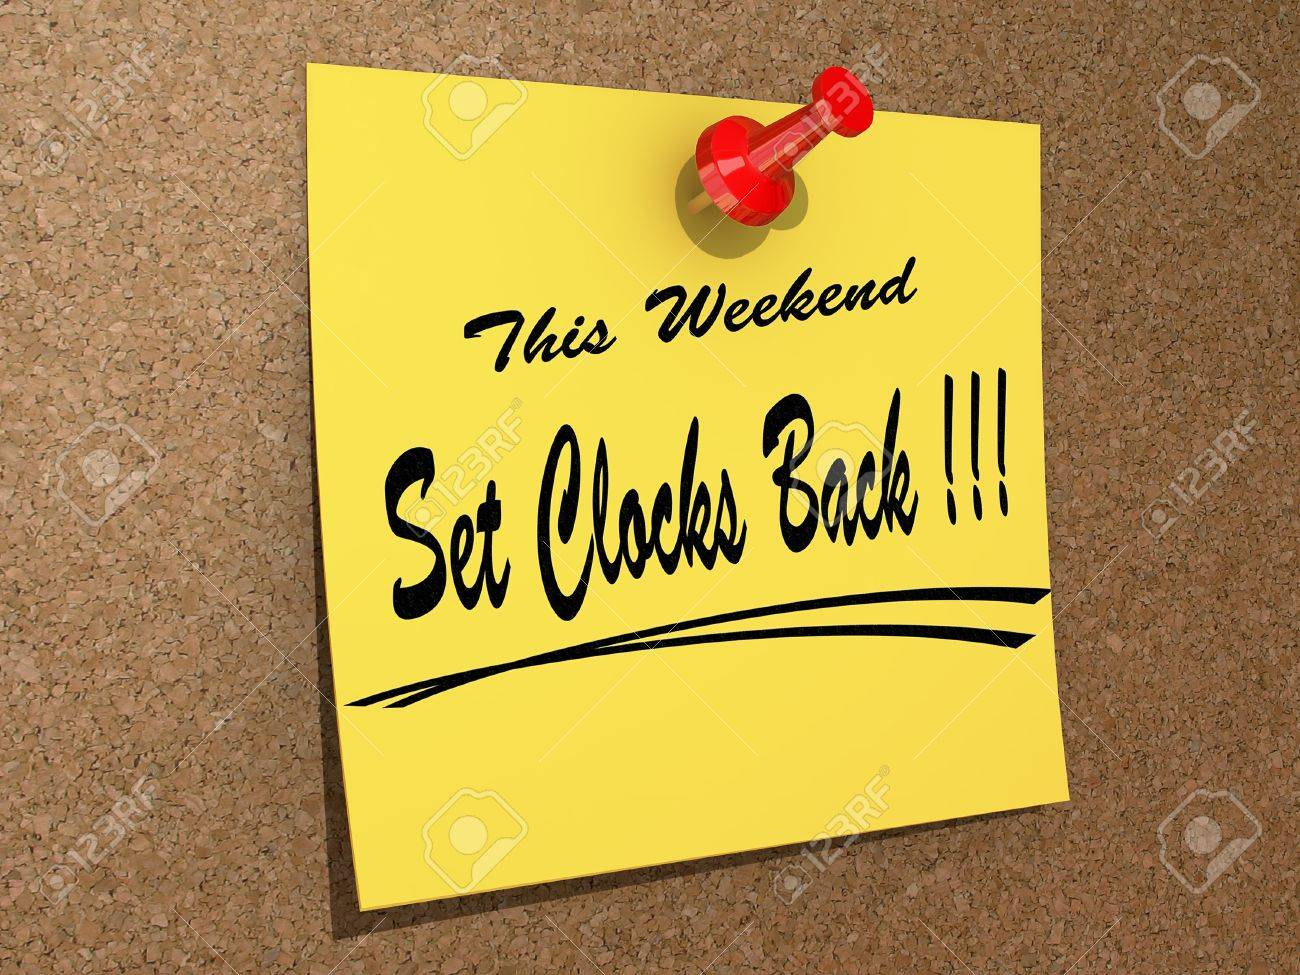 A note pinned to a cork board with the text This Weekend Set Clocks Back. Stock Photo - 17572089